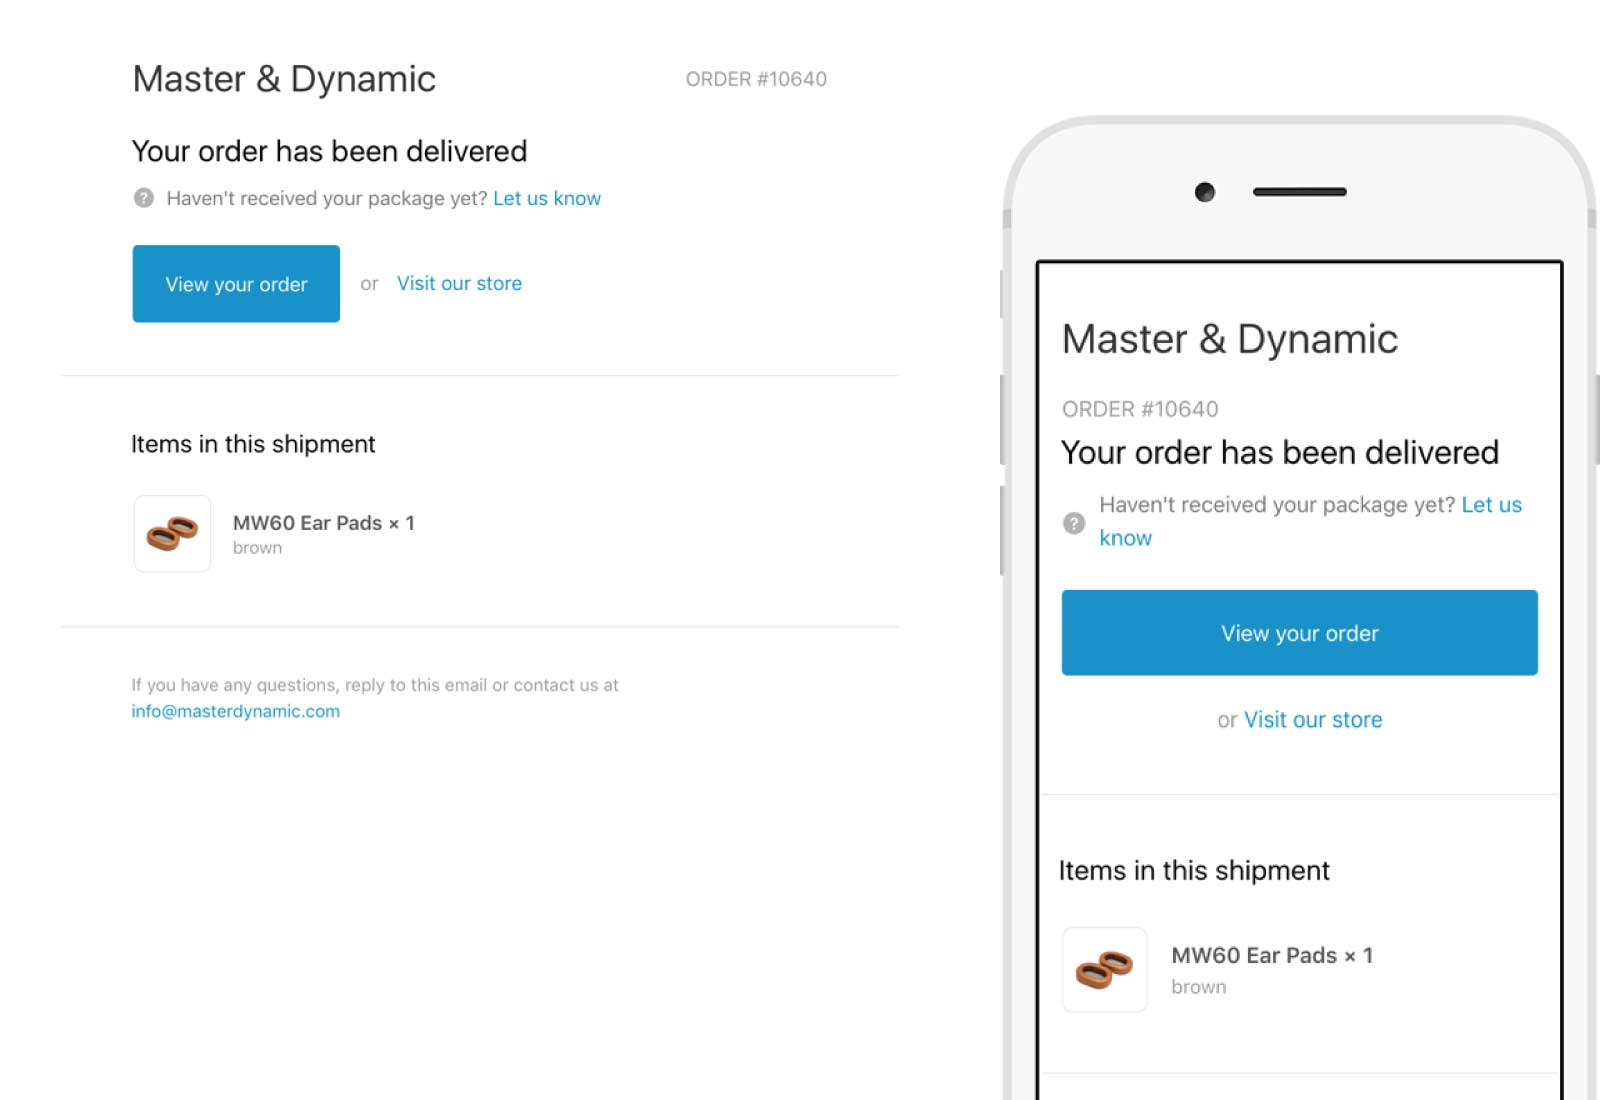 Master & Dynamic Email